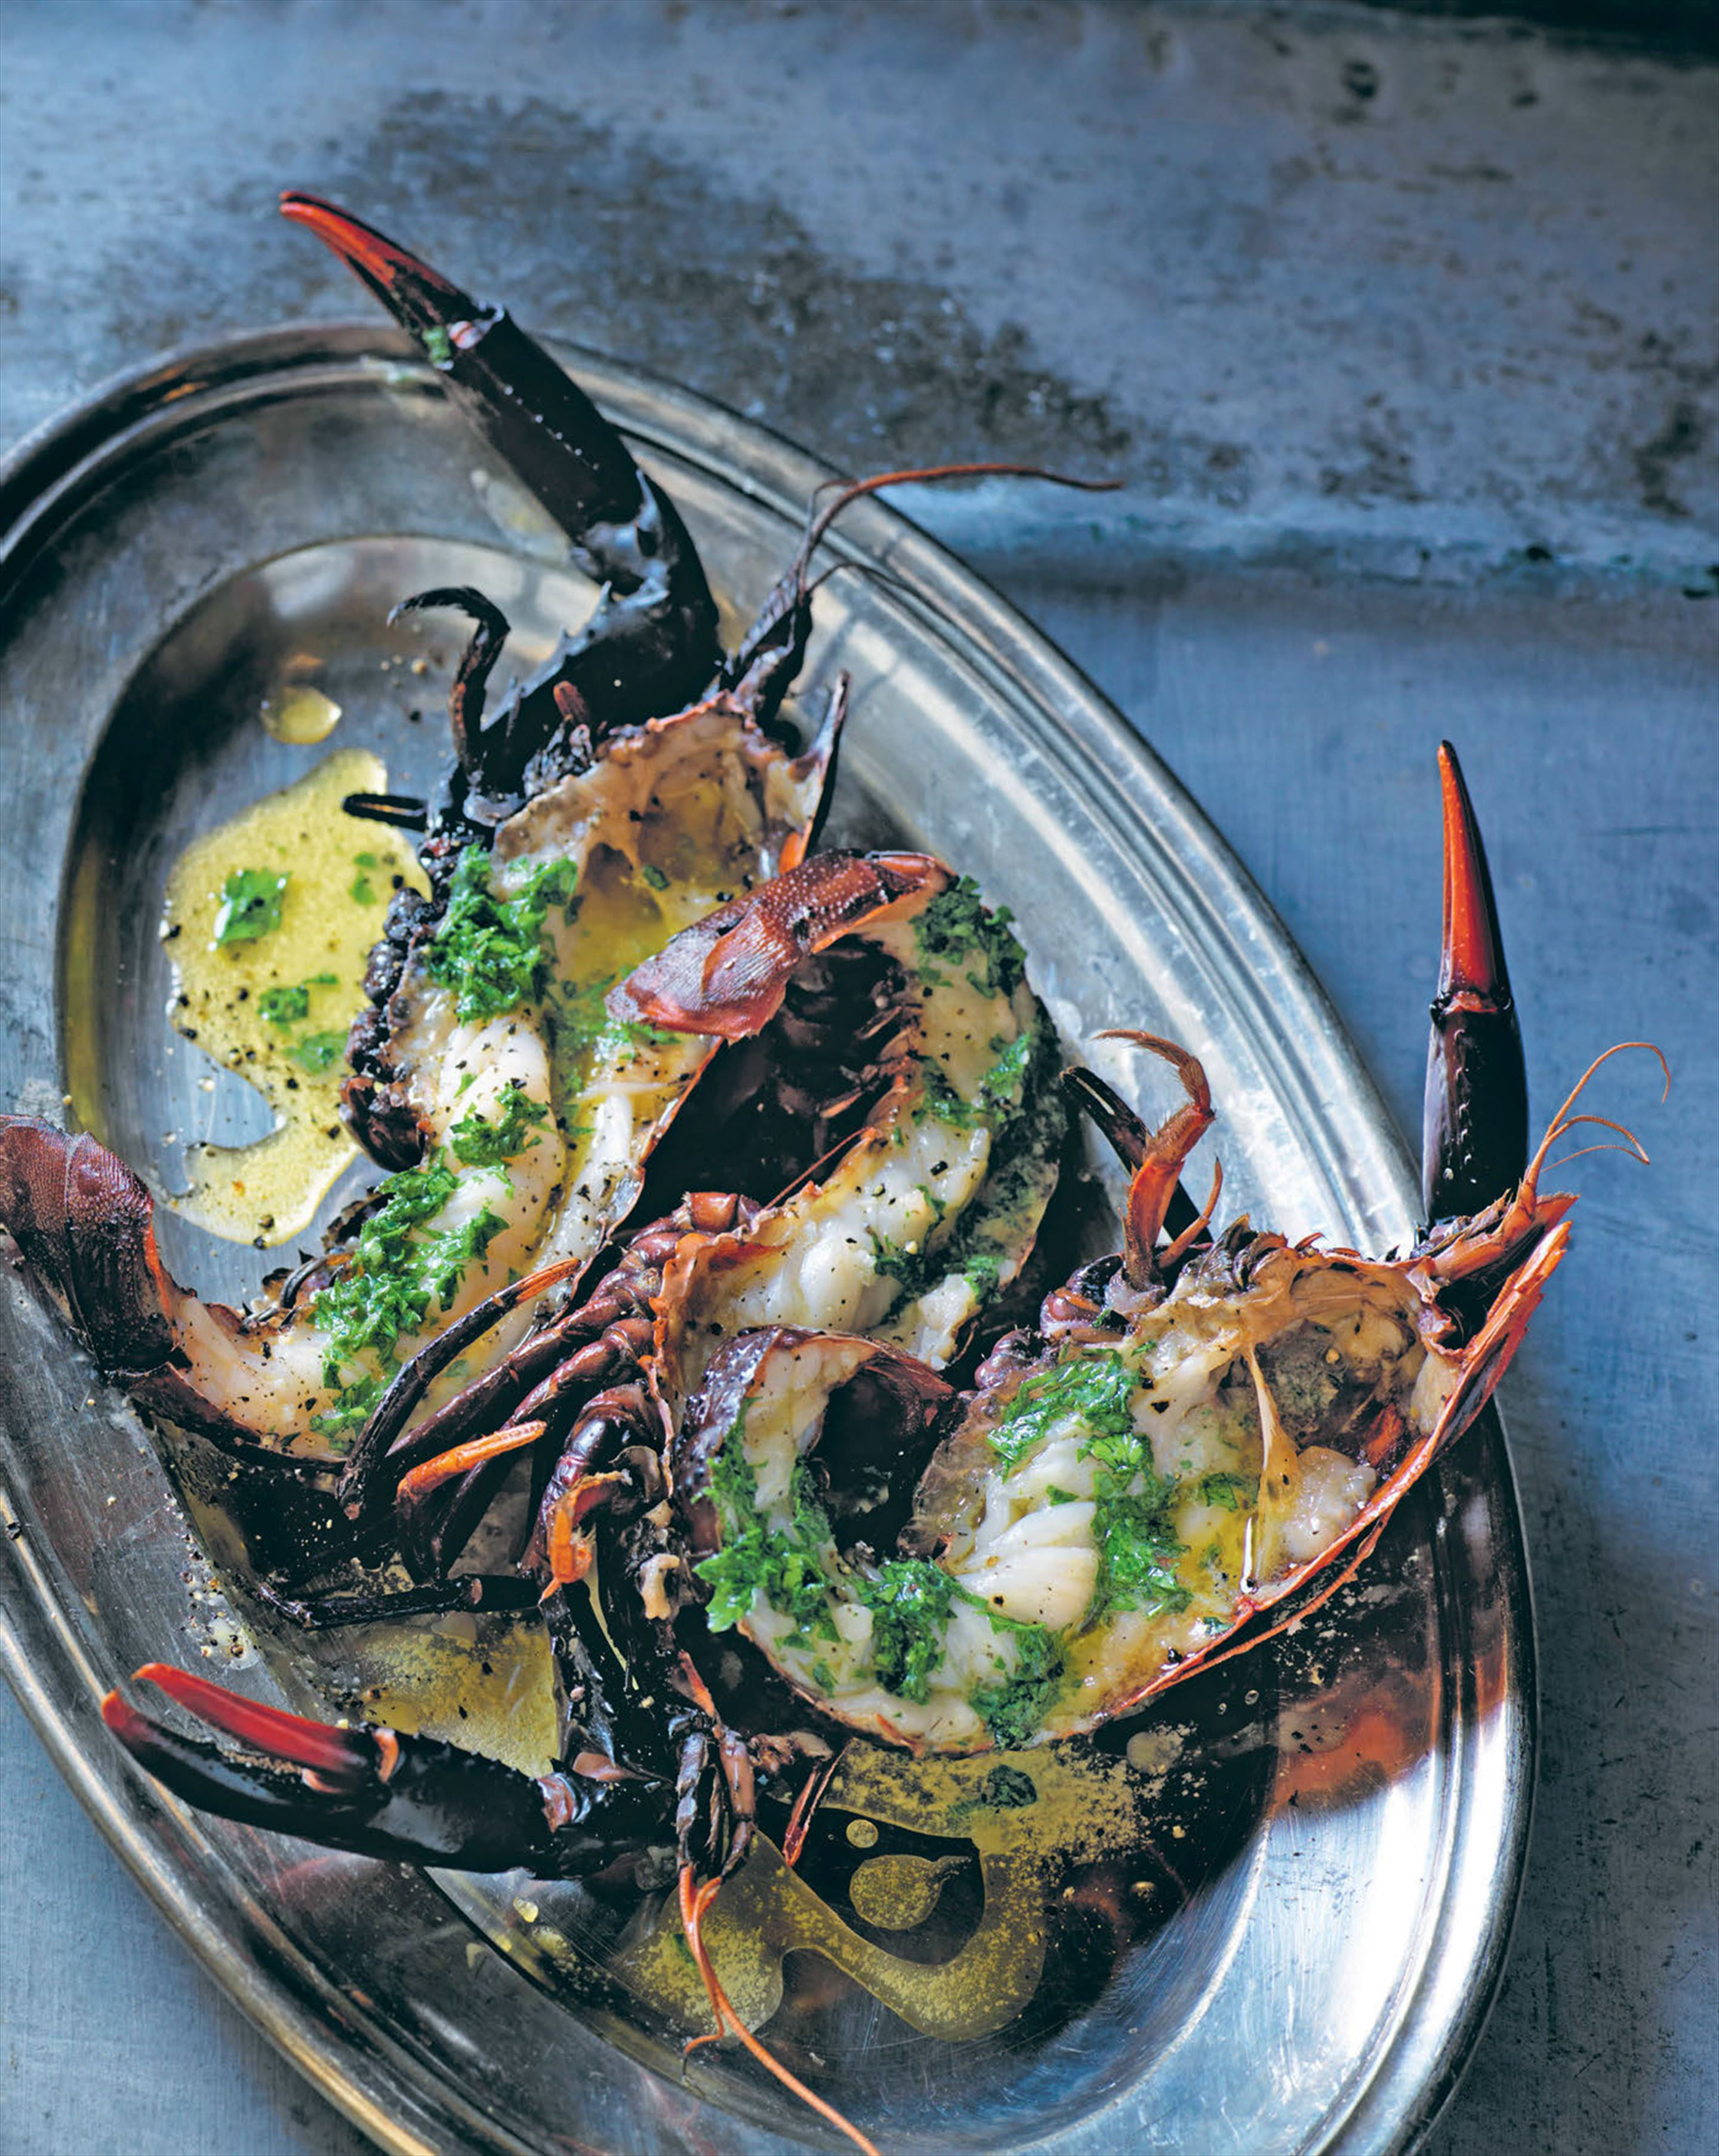 Homard lobster baked in corail butter